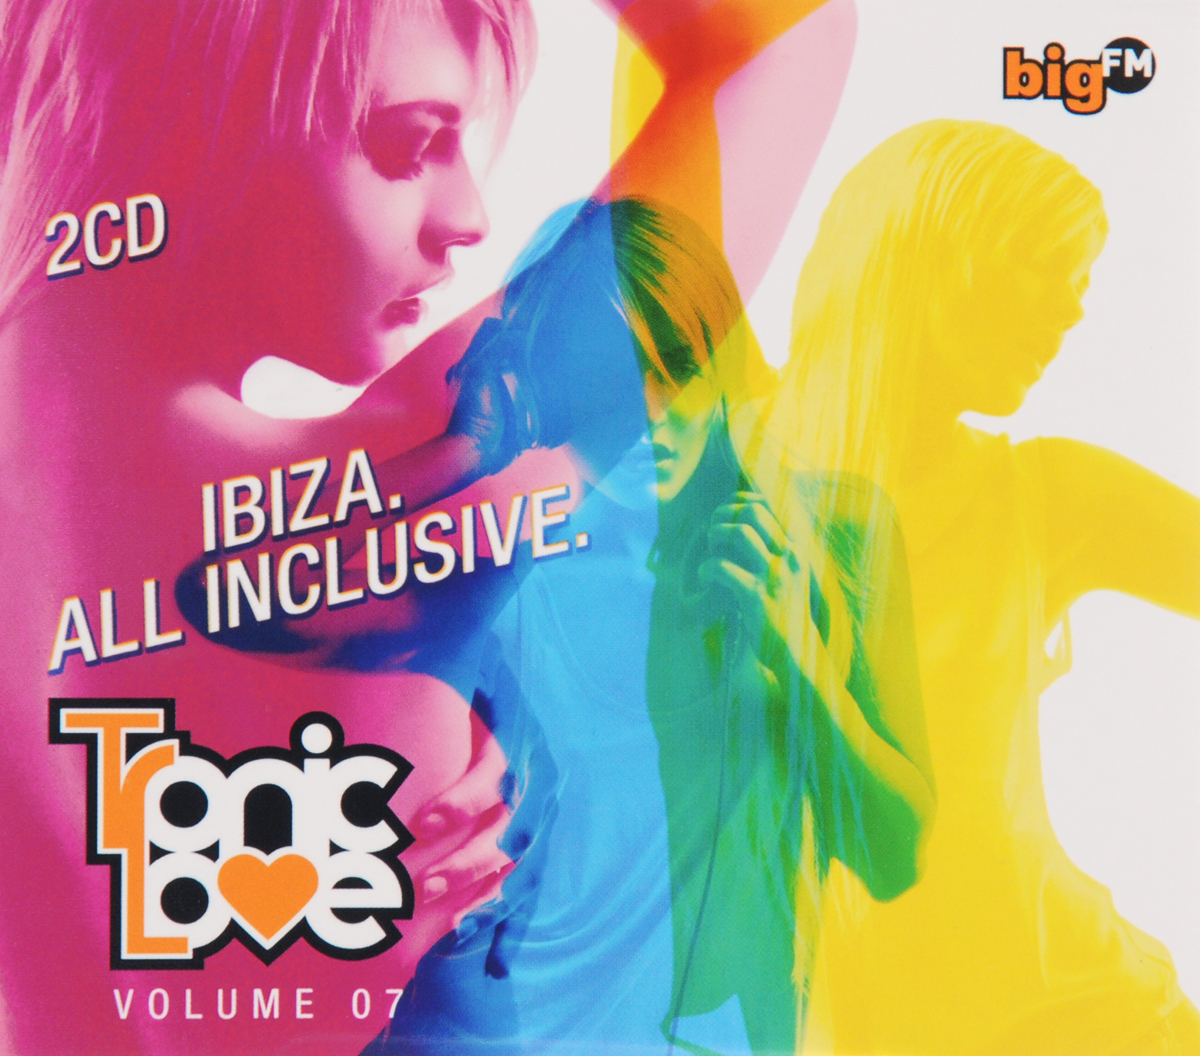 Big FM. Tronic Love. Volume 07 (2 CD)